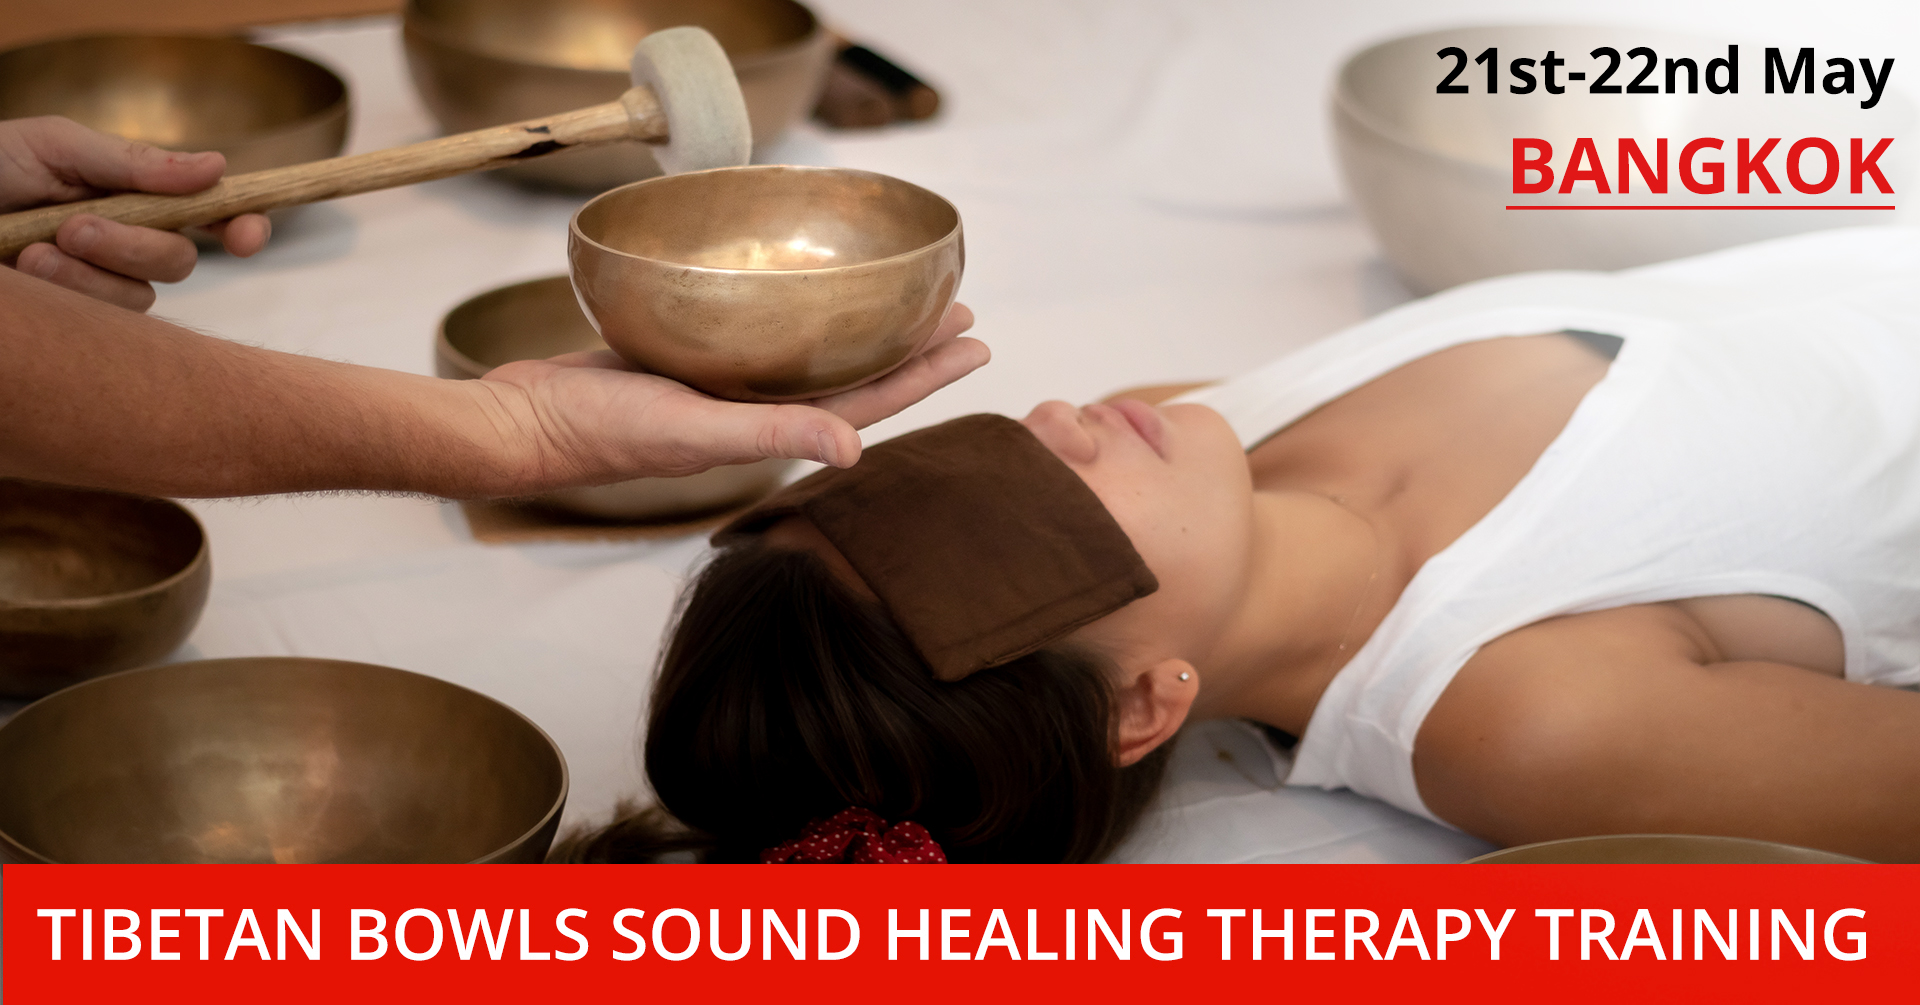 2-Day Tibetan Bowls Sound Healing Therapy Training Course Bangkok